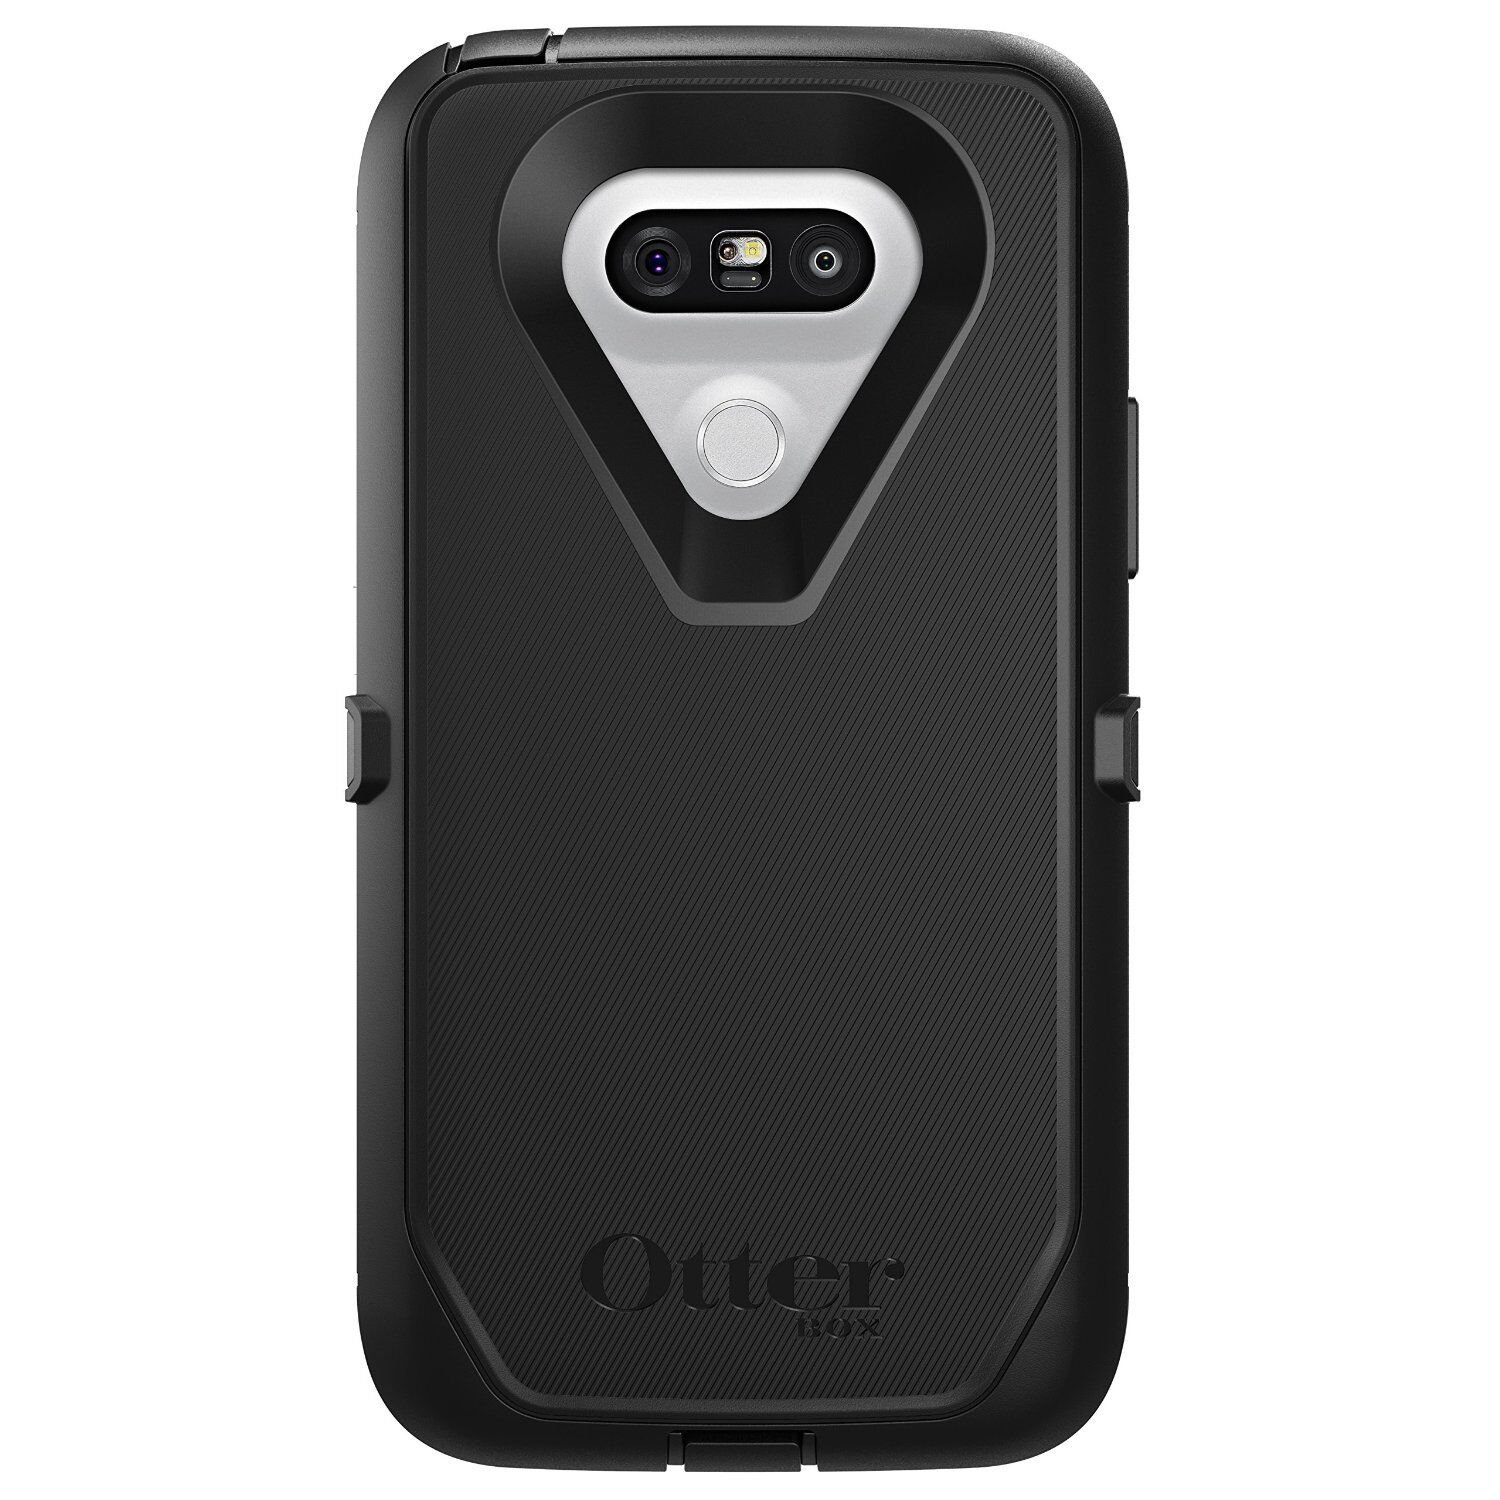 Otterbox Defender Series Case with Belt Clip Holster for LG G5 - BLACK